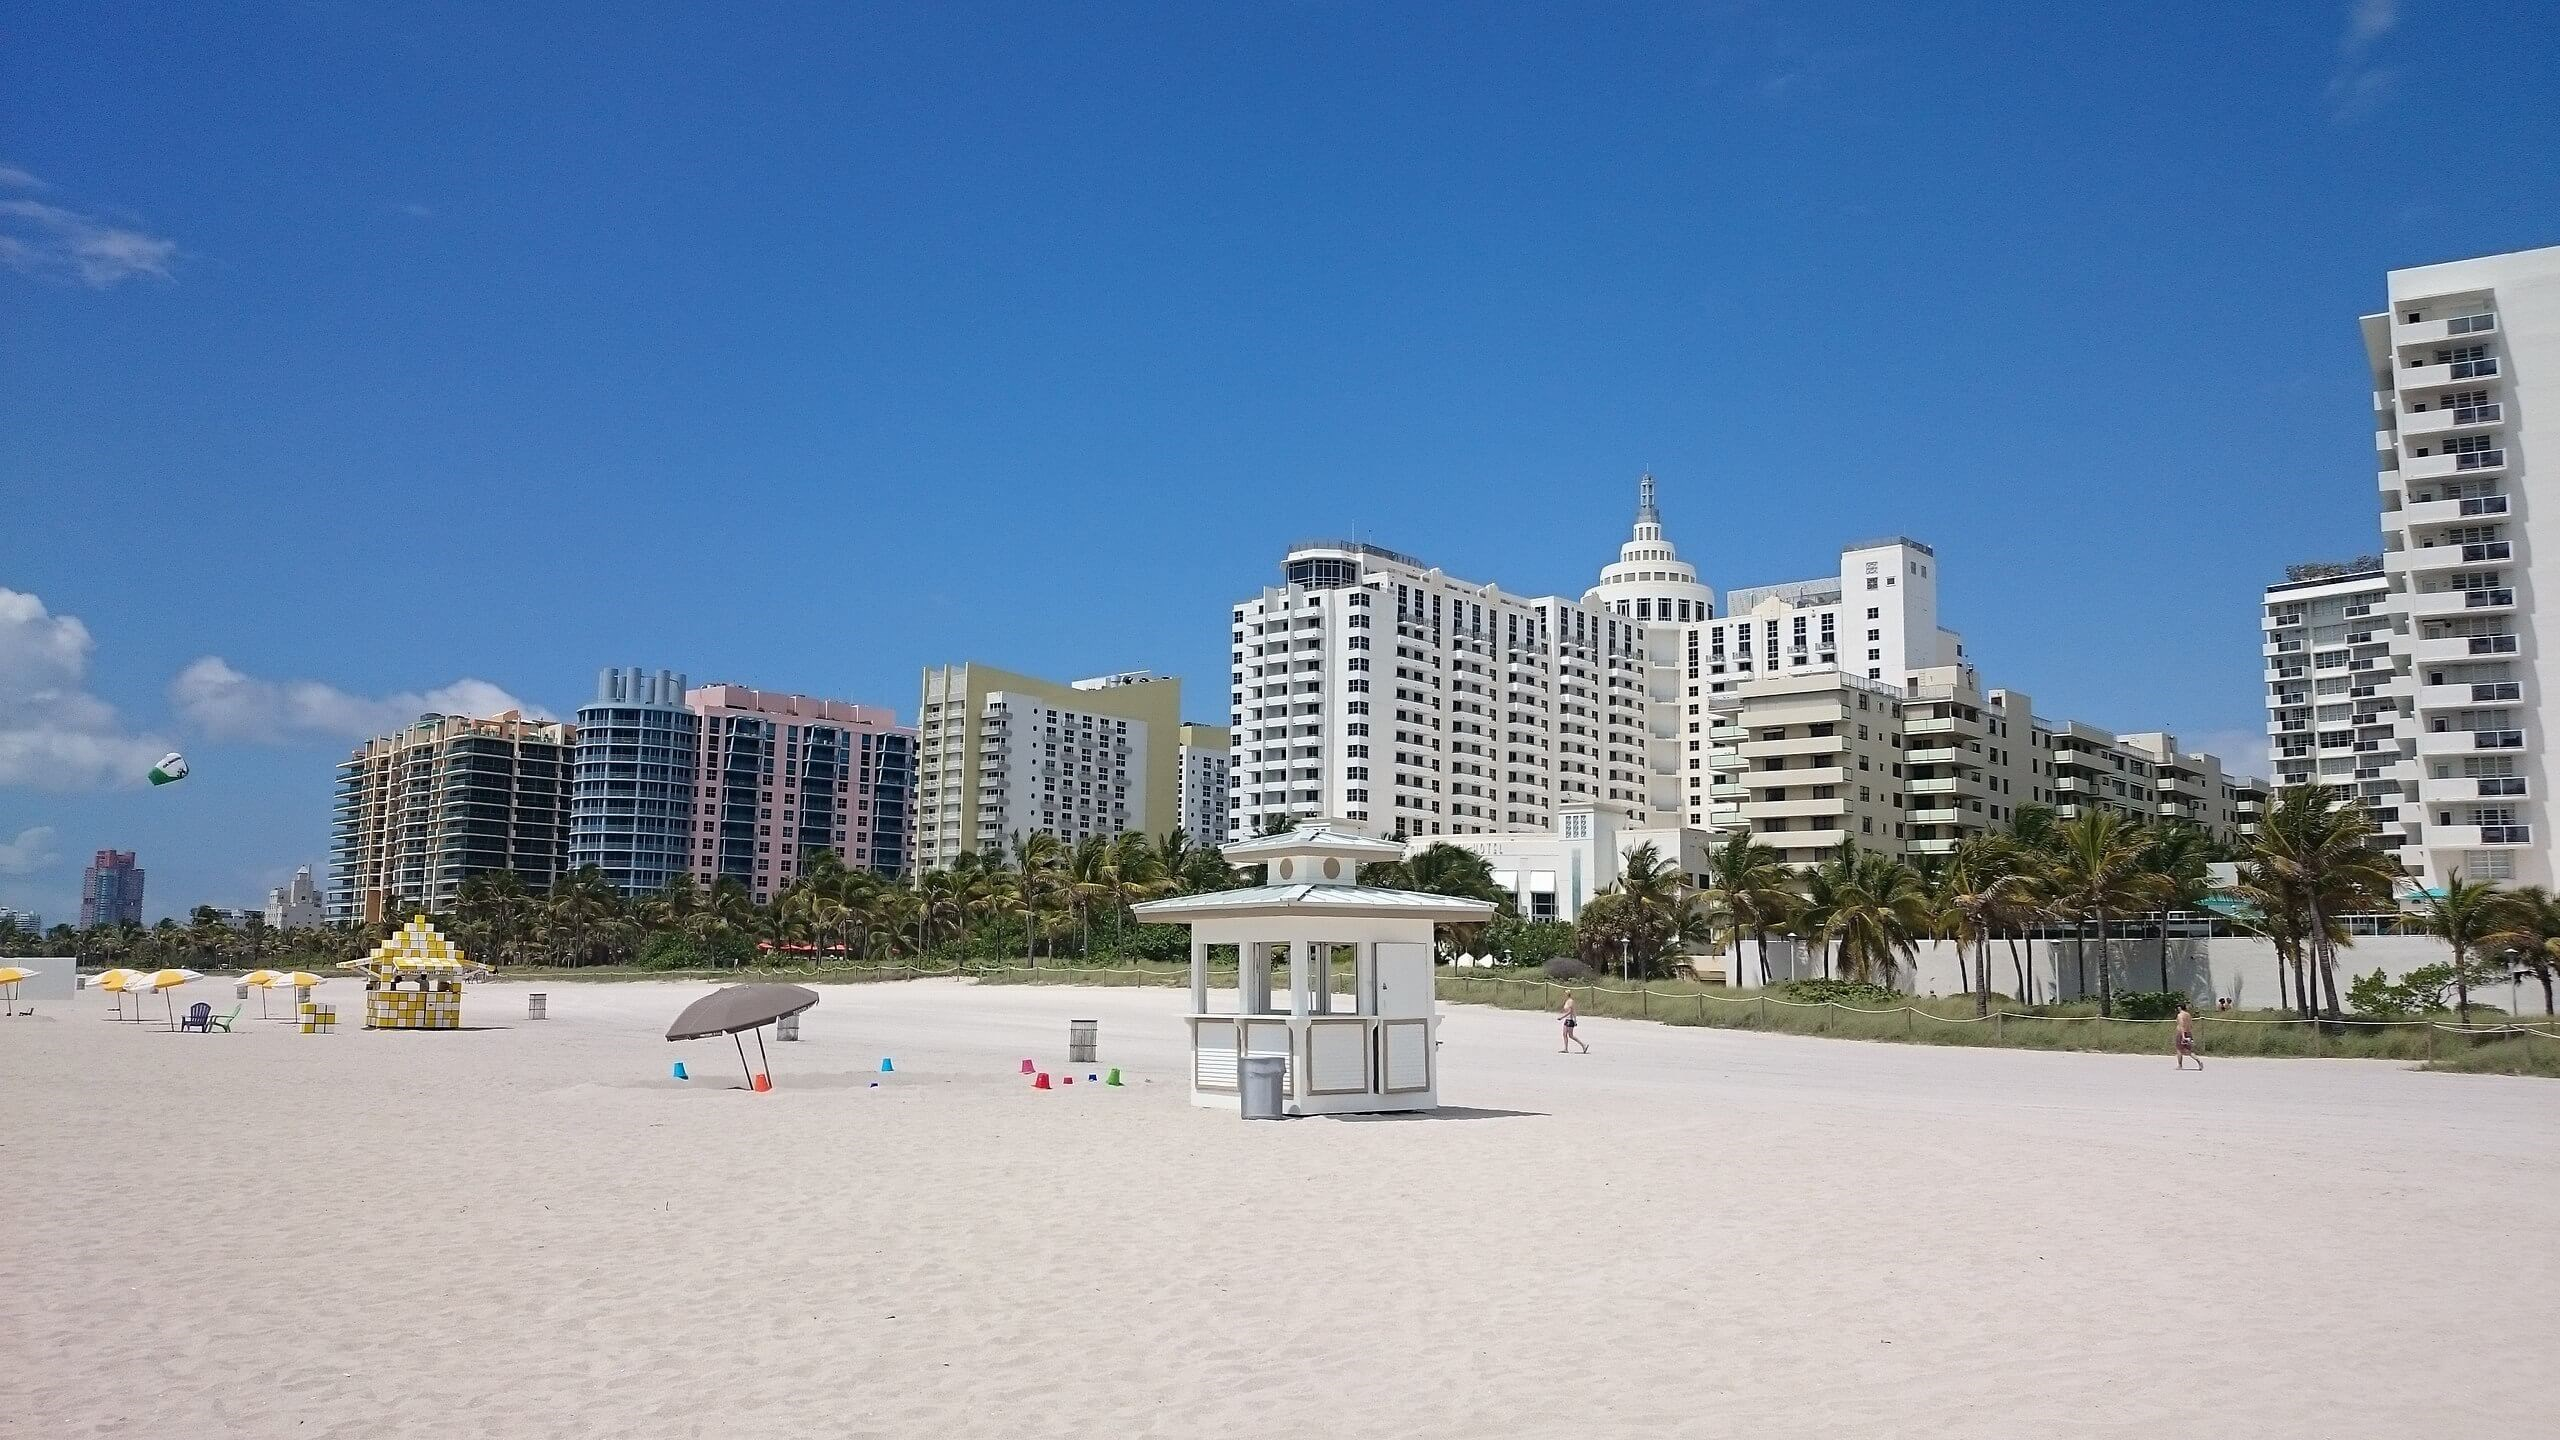 Image of South Beach